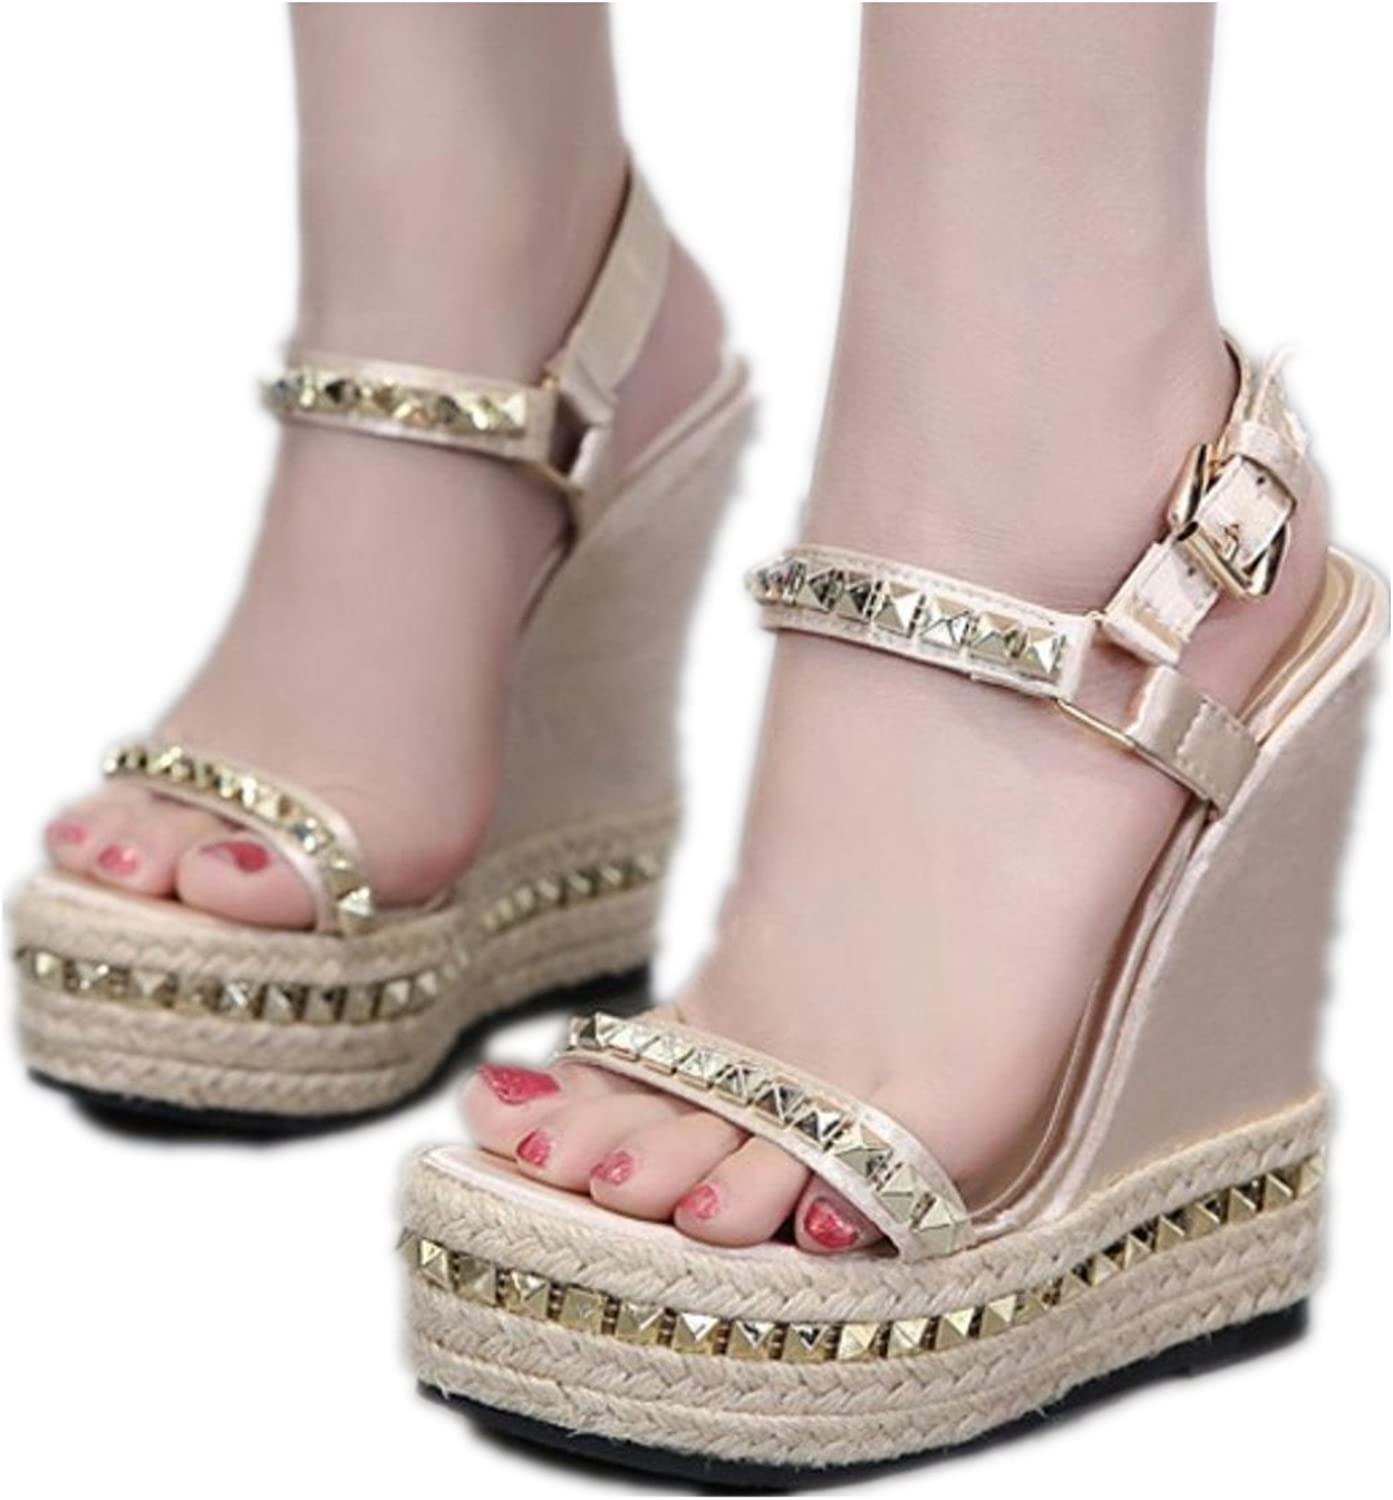 Women Ultra Very High Heels Bohemian Gladiator Sandals Rope Hemp shoes